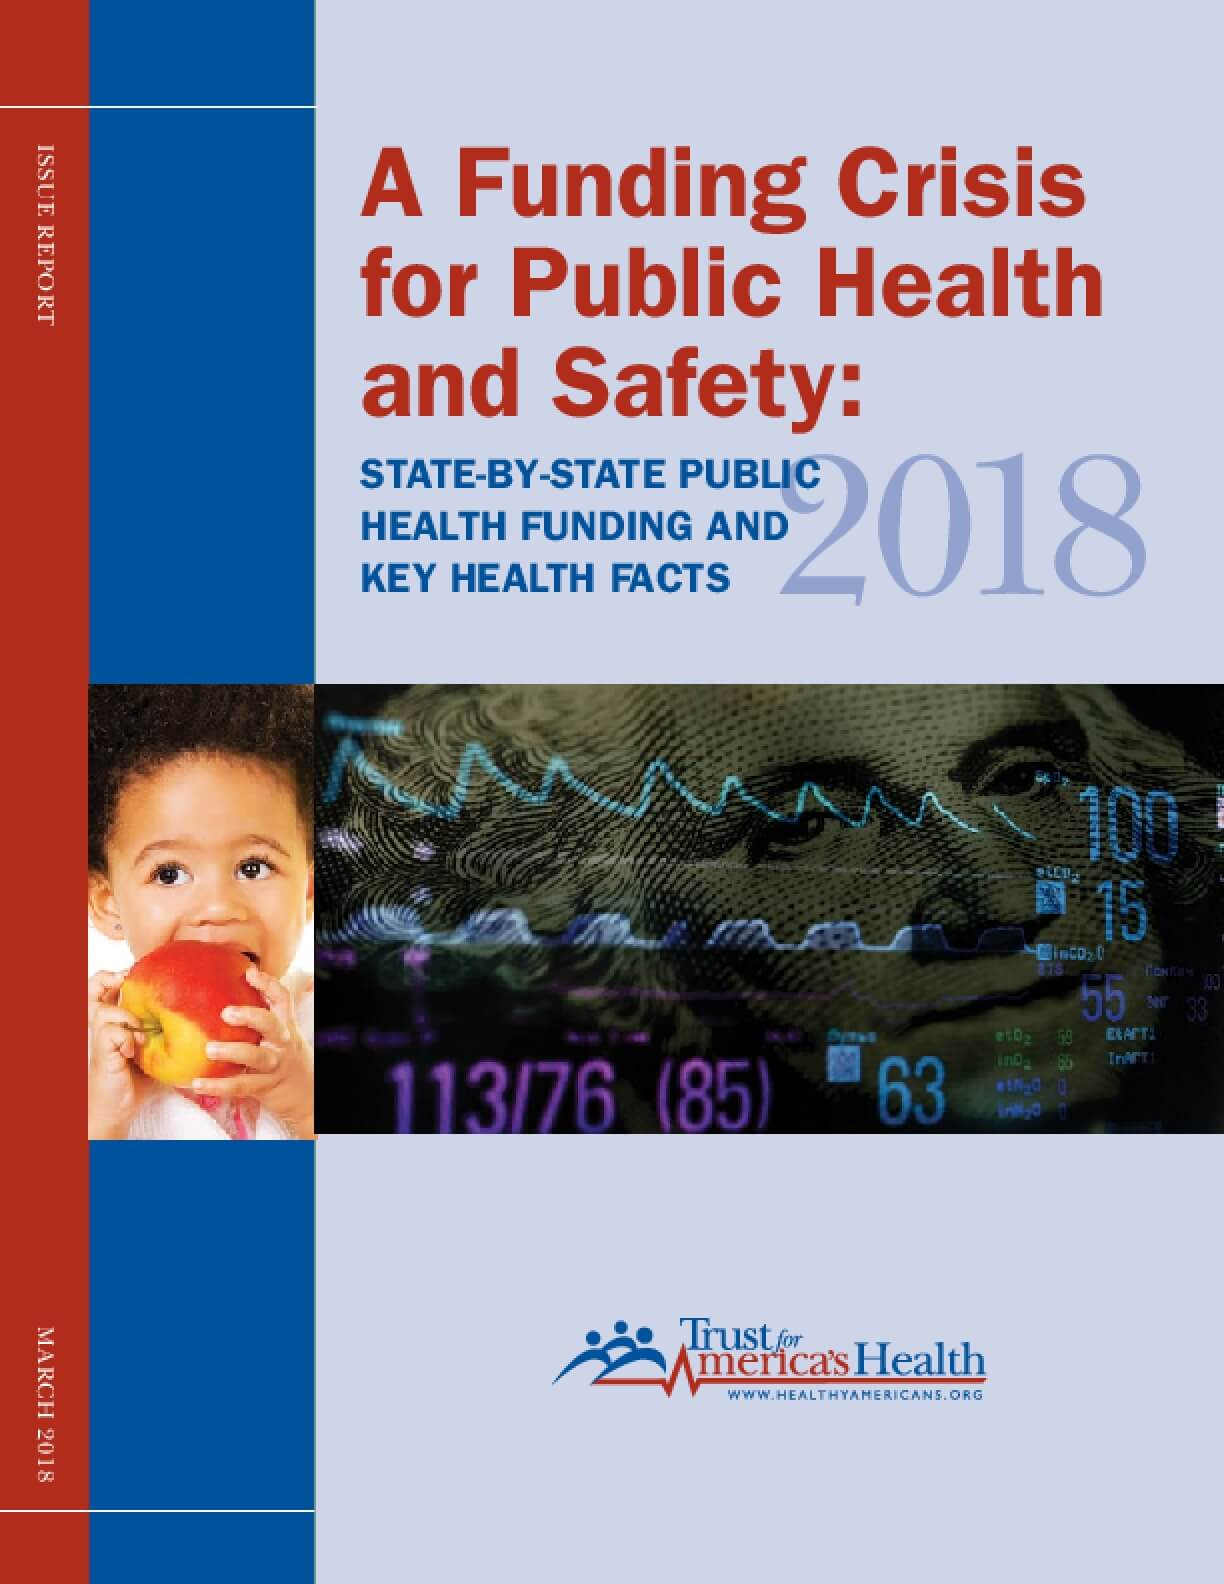 A Funding Crisis for Public Health and Safety: State-by-State and Federal Public Health Funding Facts and Recommendations 2018